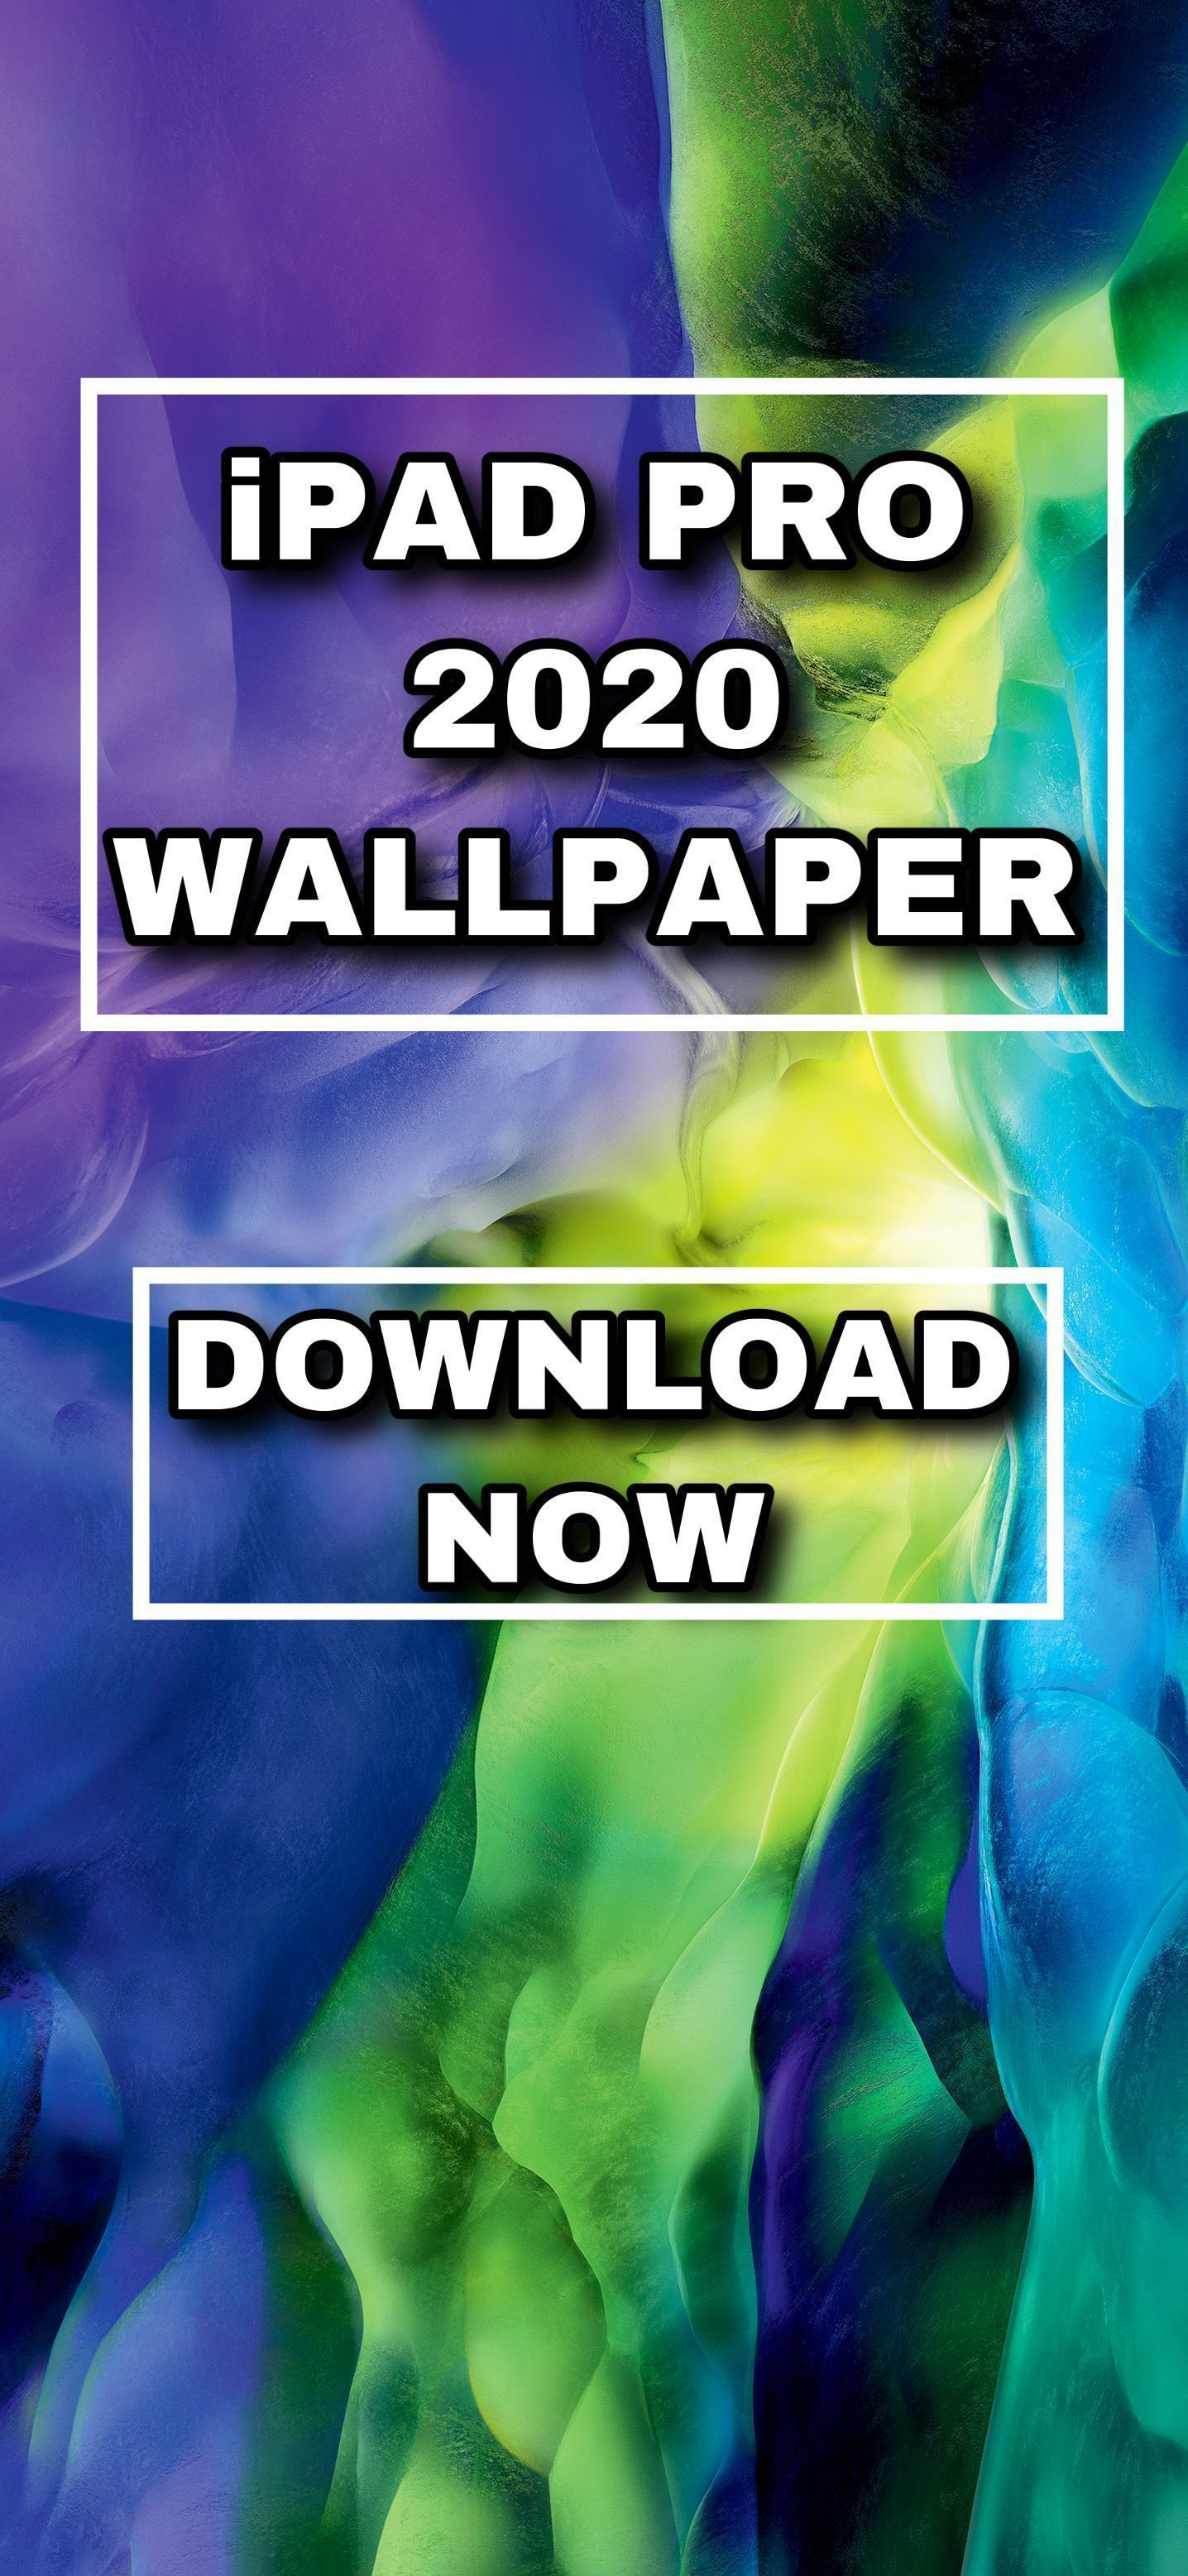 iPad Pro 2020 HD Wallpapers Latest For iPhone, iPad and Desktop